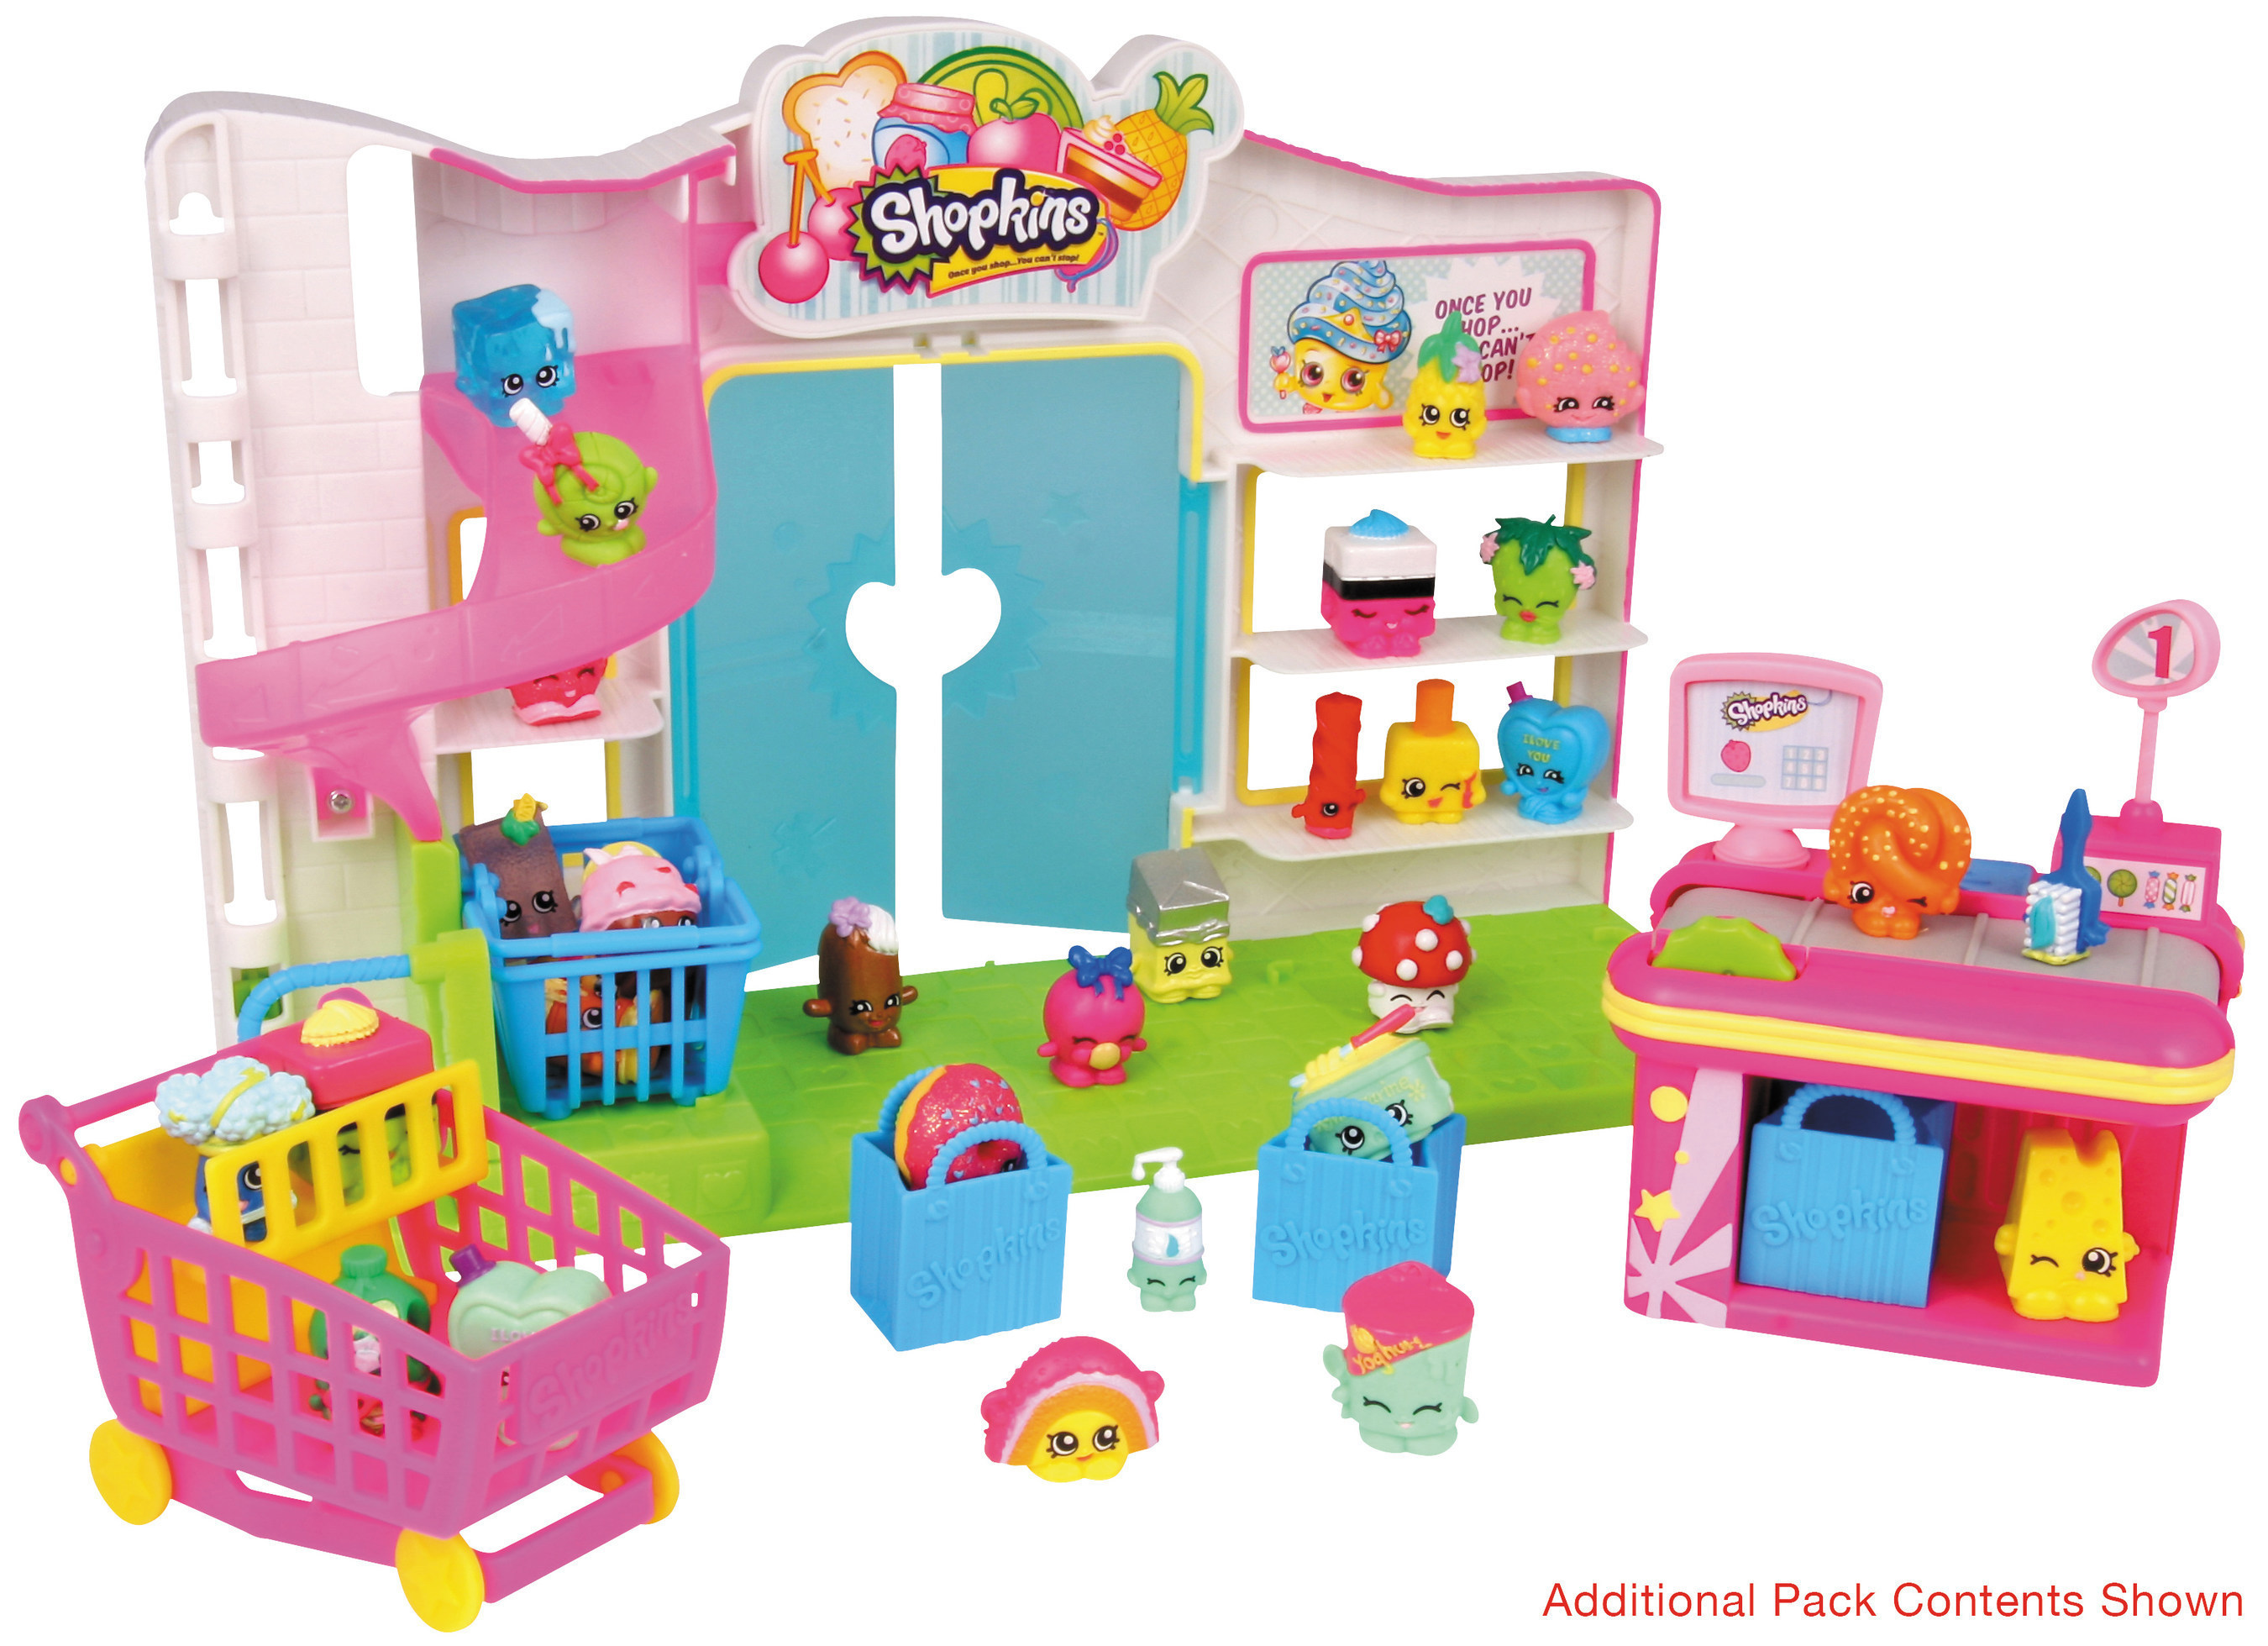 Shop Hasbro to find kids toys and action figures for all your favourite Hasbro brands: Transformers, My Little Pony, Baby Alive, Play-Doh, and more!